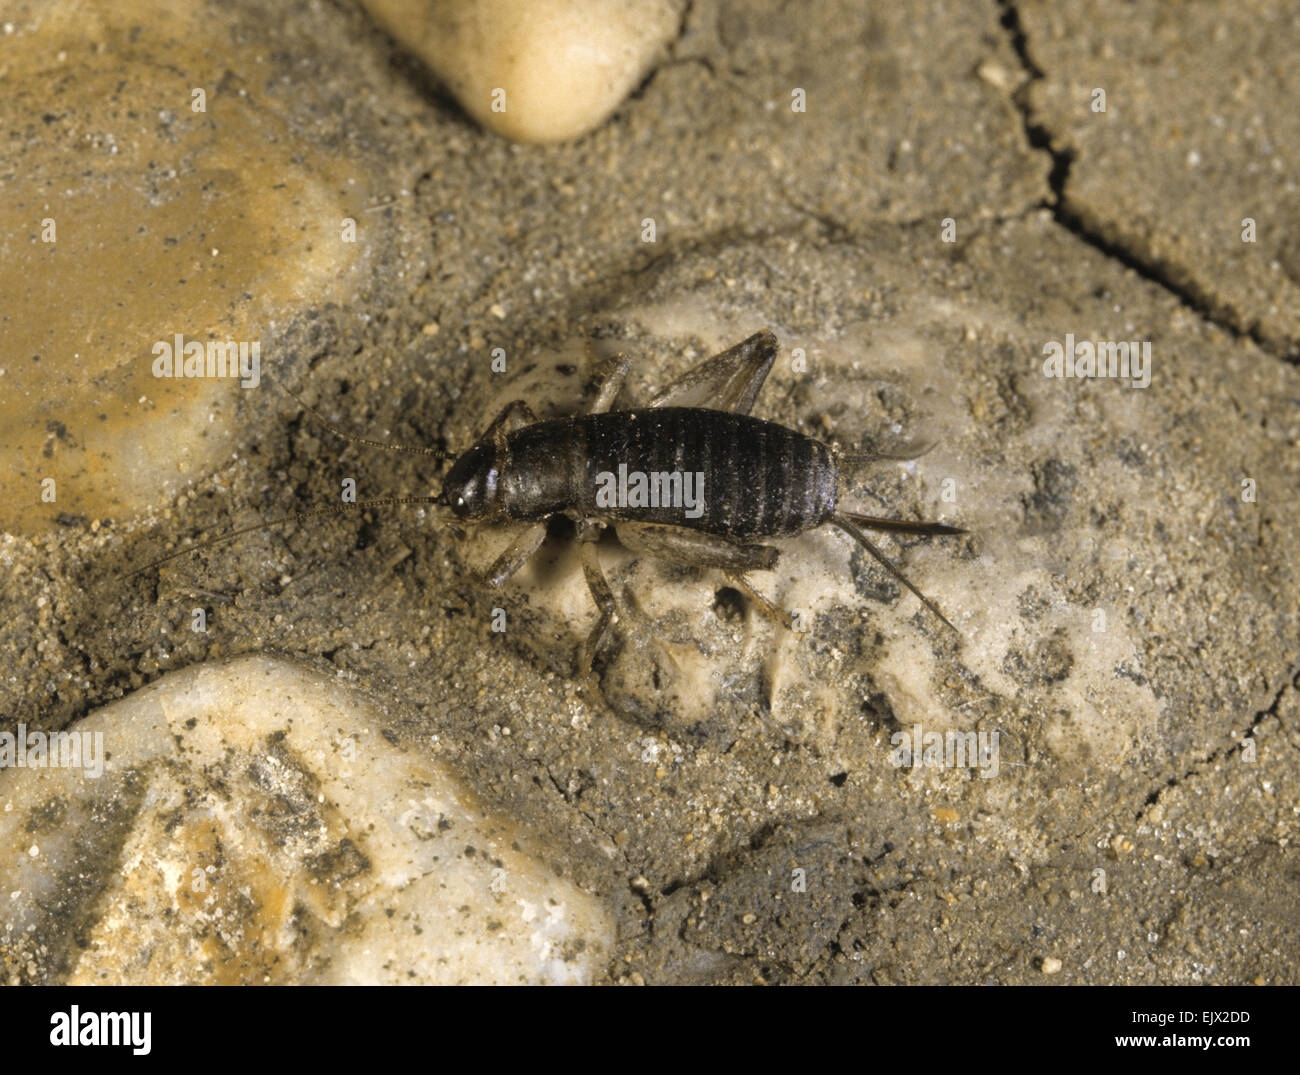 Scaly Cricket - Pseudomogoplistes vincentae - Stock Image